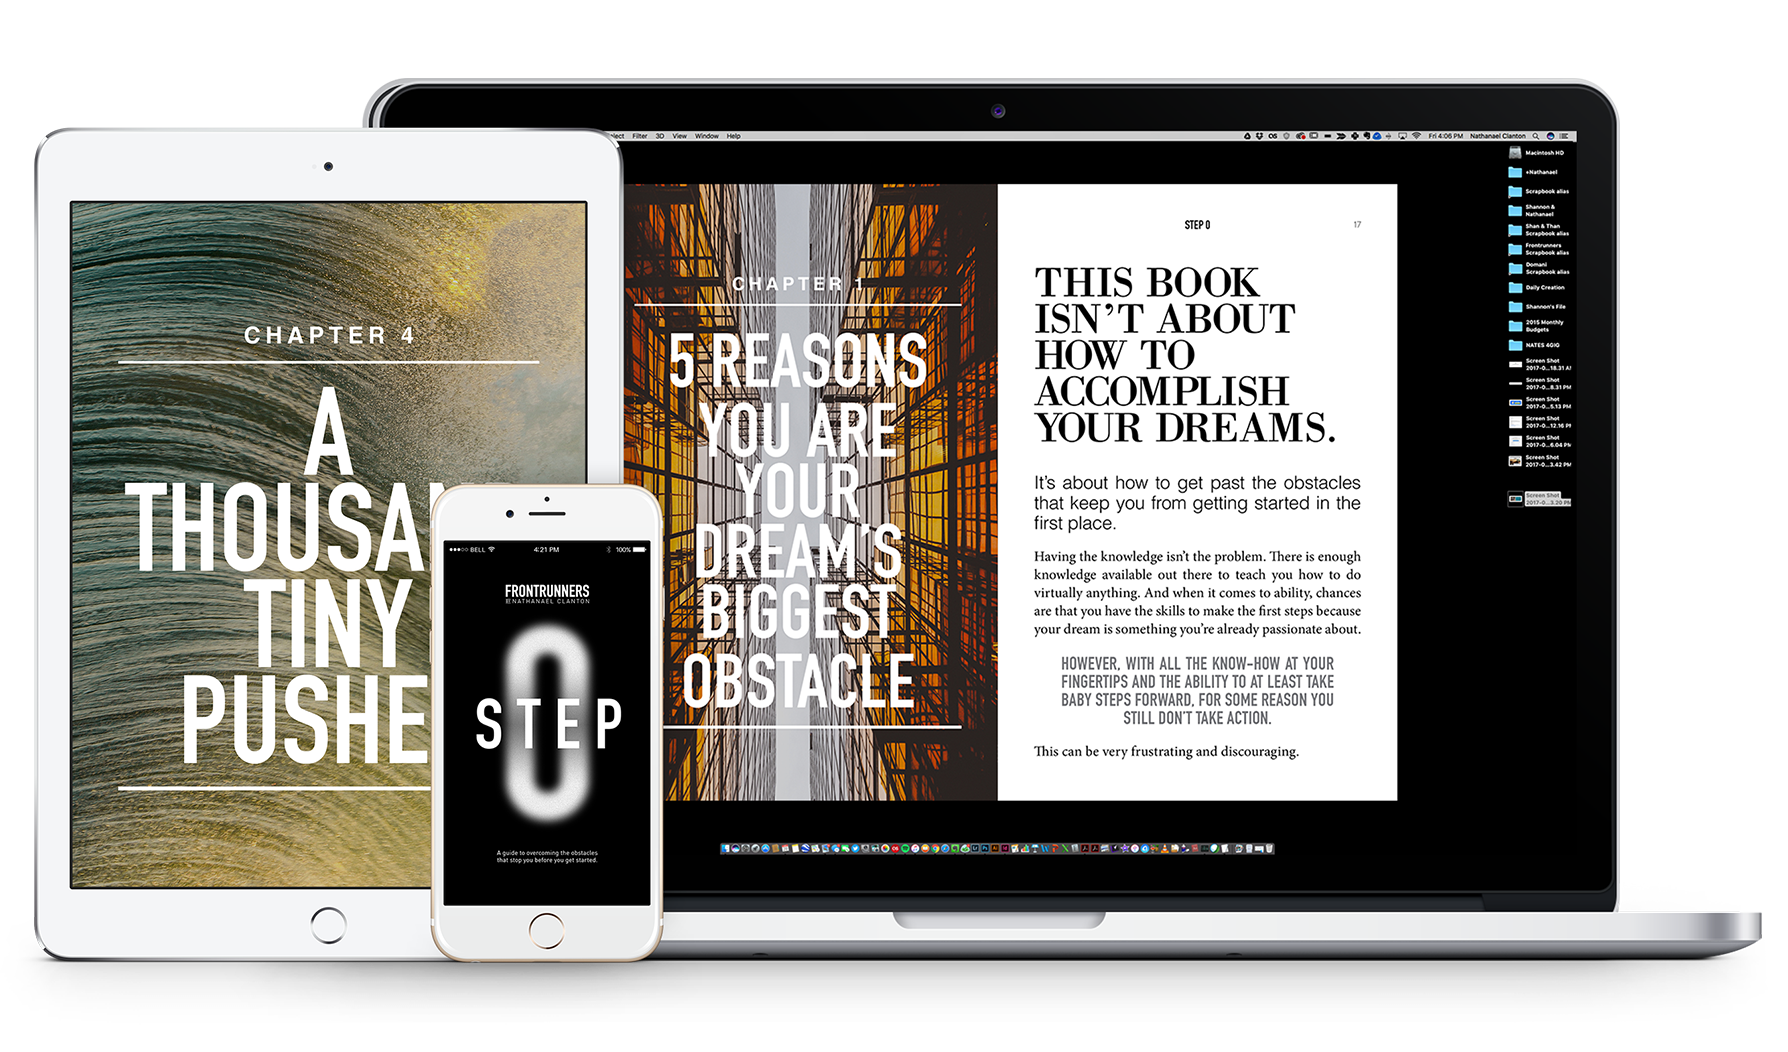 Do you struggle with getting out of your own way in your business; With negative self talk, and lack of belief? - Introducing STEP 0: a guide to overcoming the obstacles that stop you before you get started. Take your first step and download your free Sample Chapter by clicking the button below. LEARN MORE>>